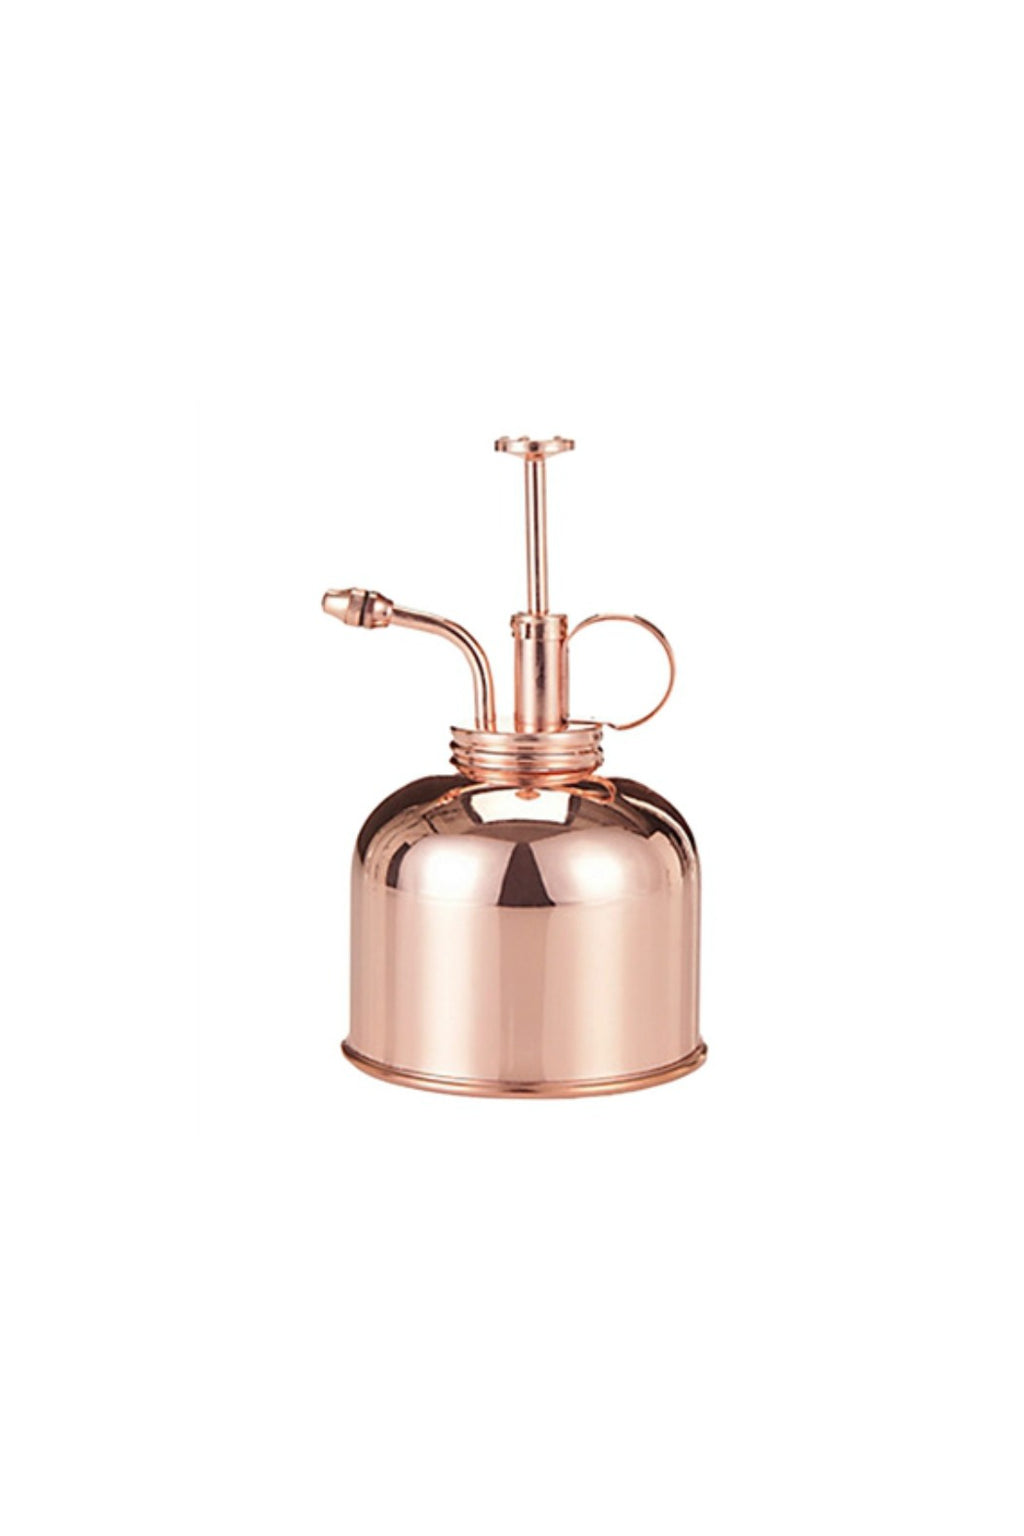 Terrebonne Limited Oil Can Mister - Copper